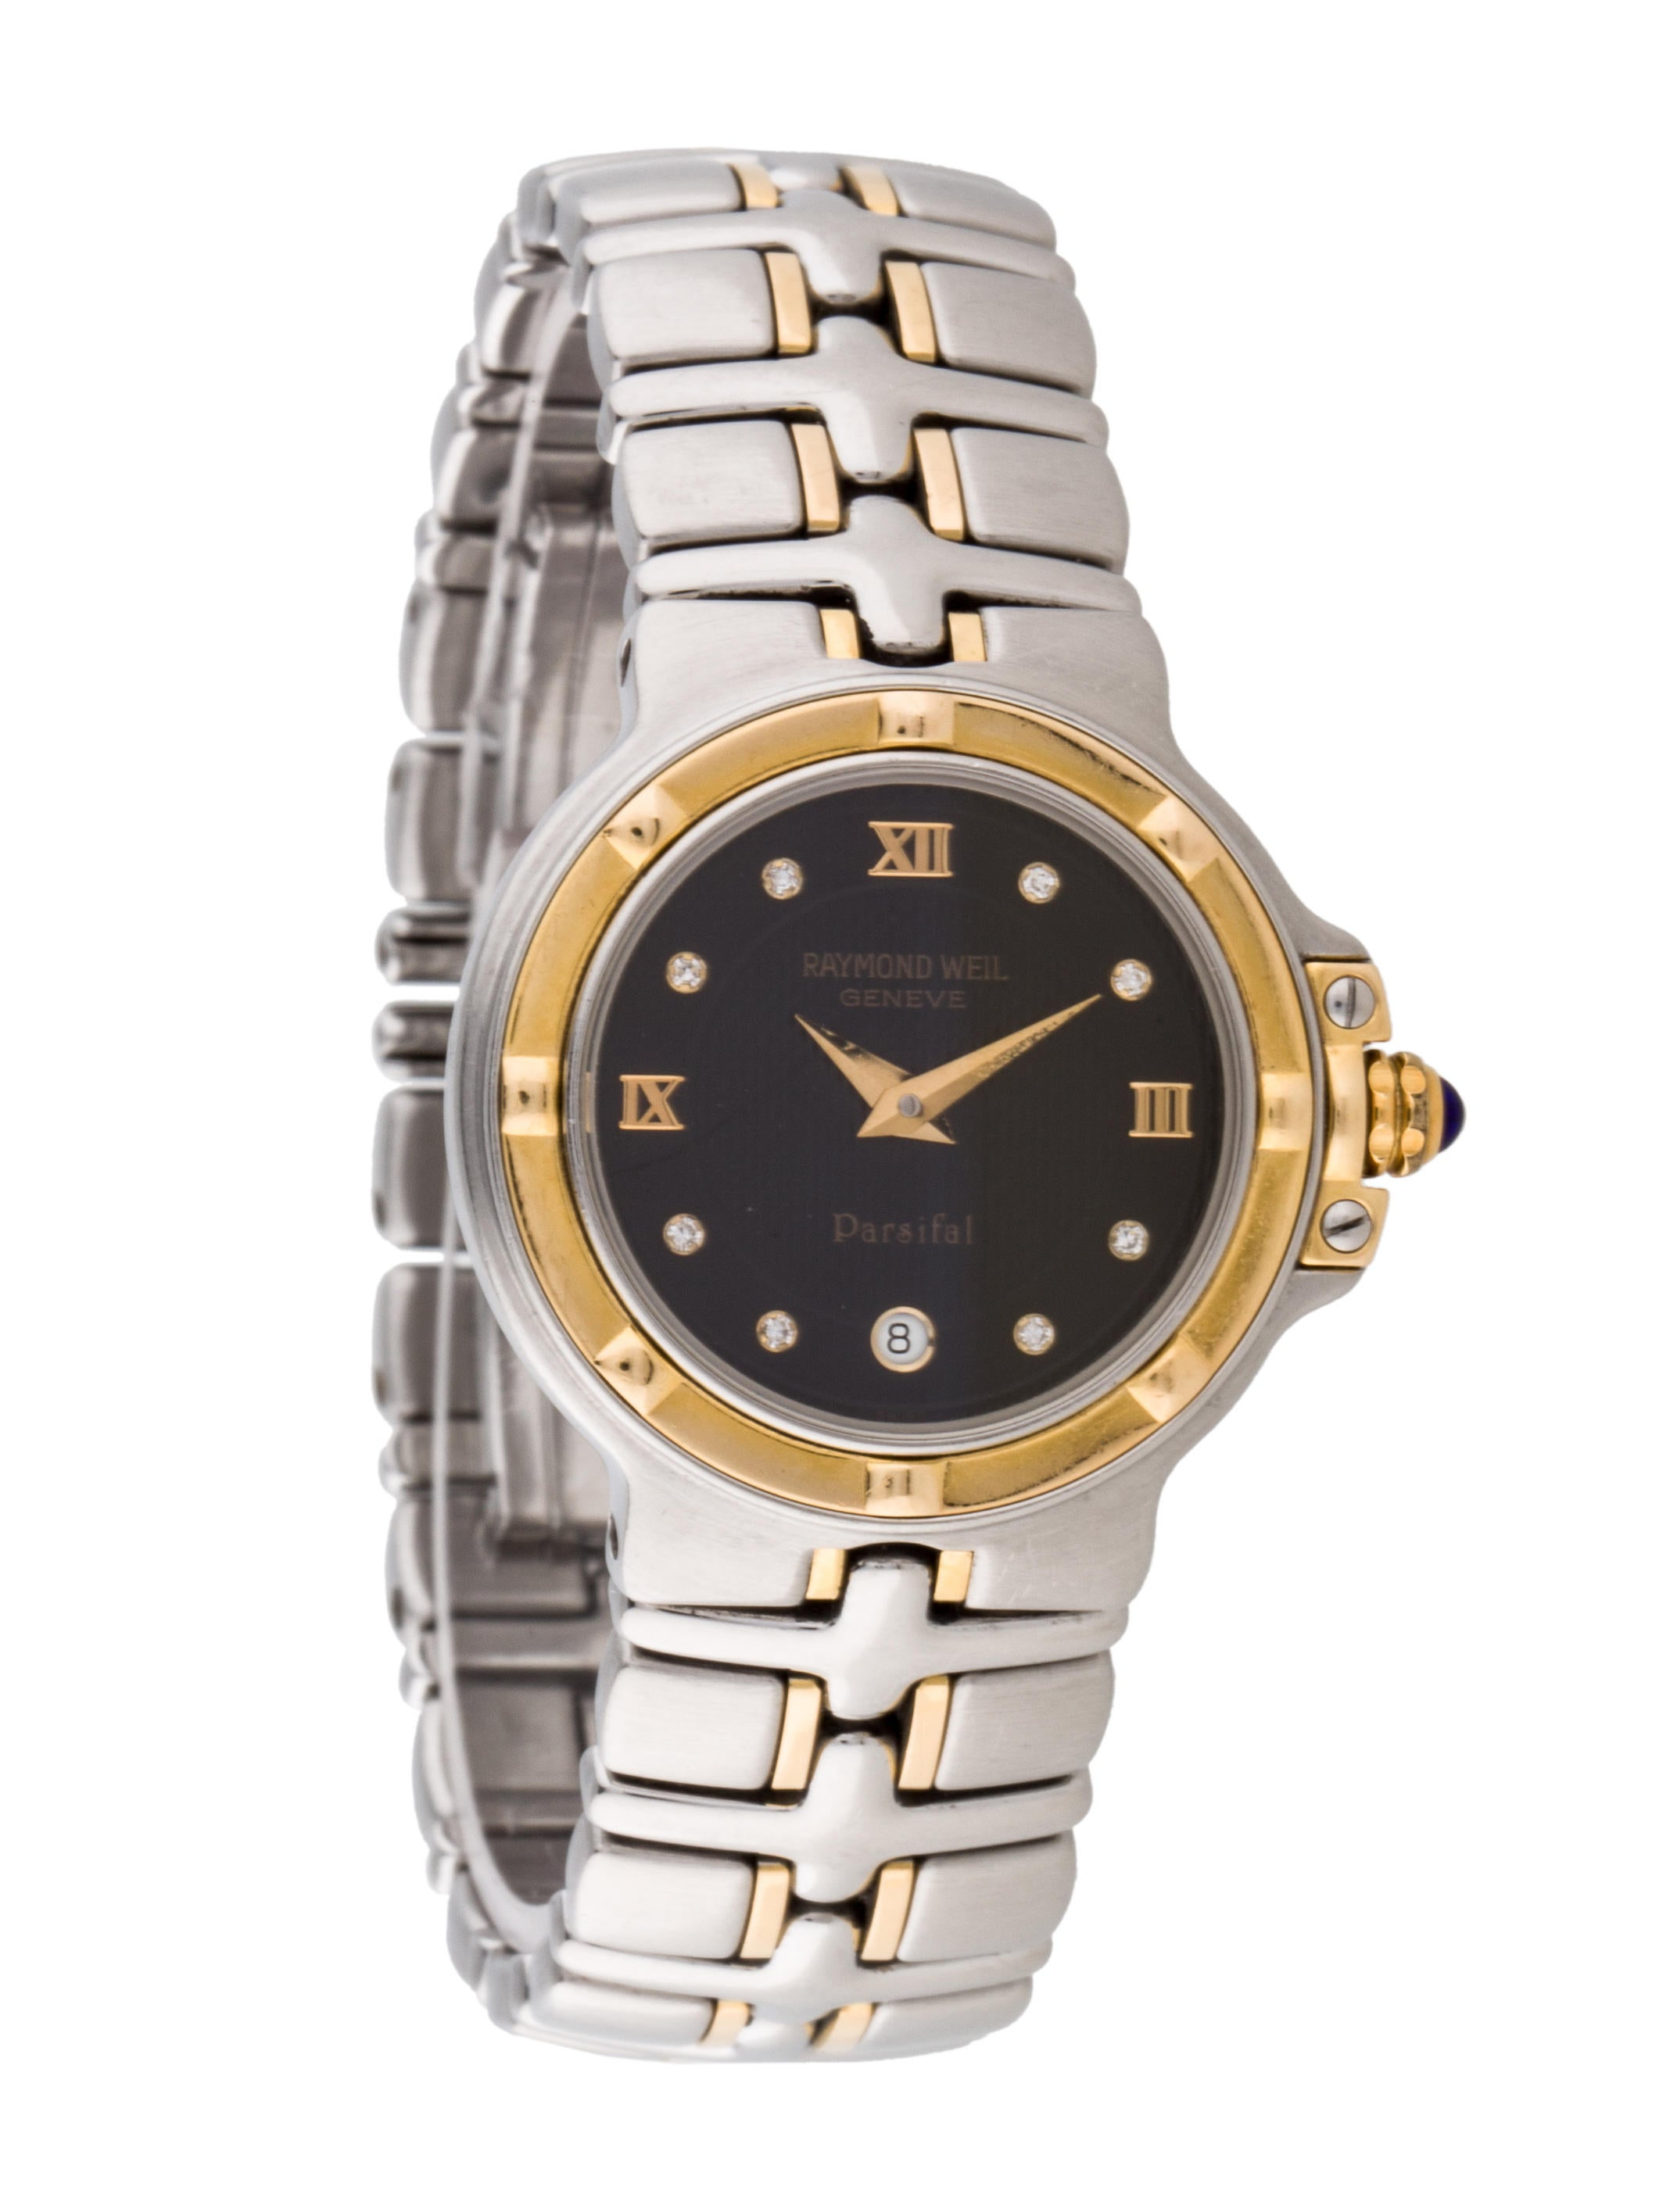 Raymond weil two tone parsifal 9990 watch bracelet ryw20156 the realreal for Raymond watches